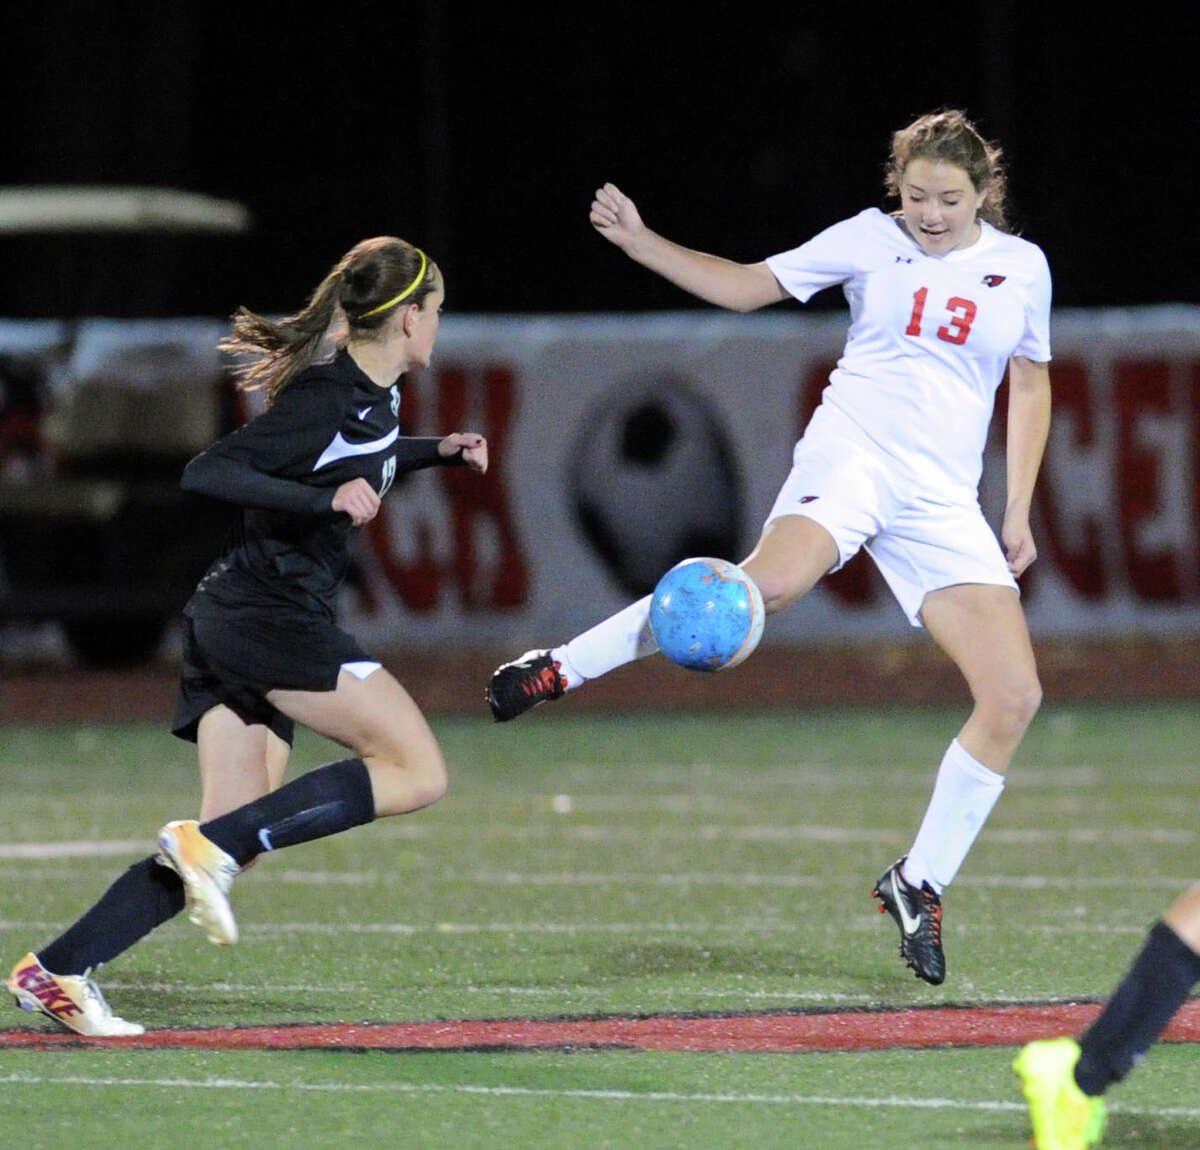 At right, Lindsay Alfano (#13) of Greenwich passes during the girls high school soccer match between Greenwich High School and Trumbull High School at Greenwich, Conn., Thursday, Oct. 23, 2014. Greenwich won the match, 1-0.